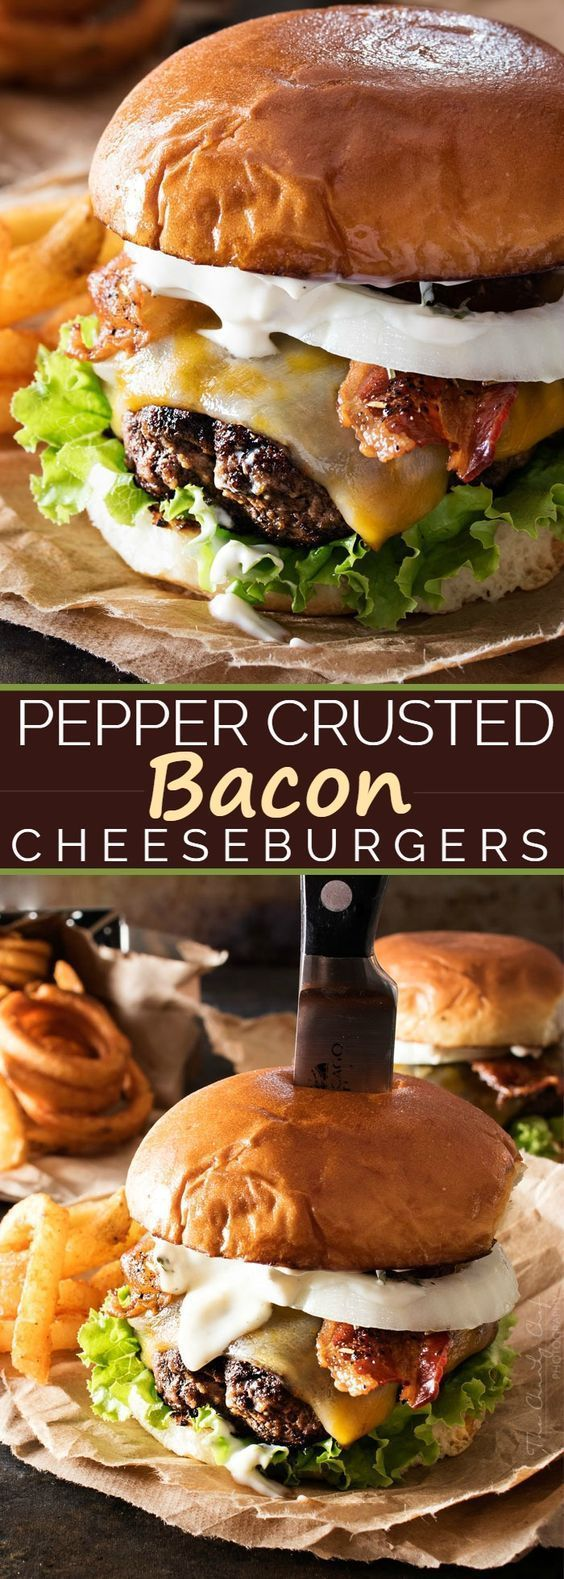 Pepper Crusted Bacon Cheeseburgers Recipe